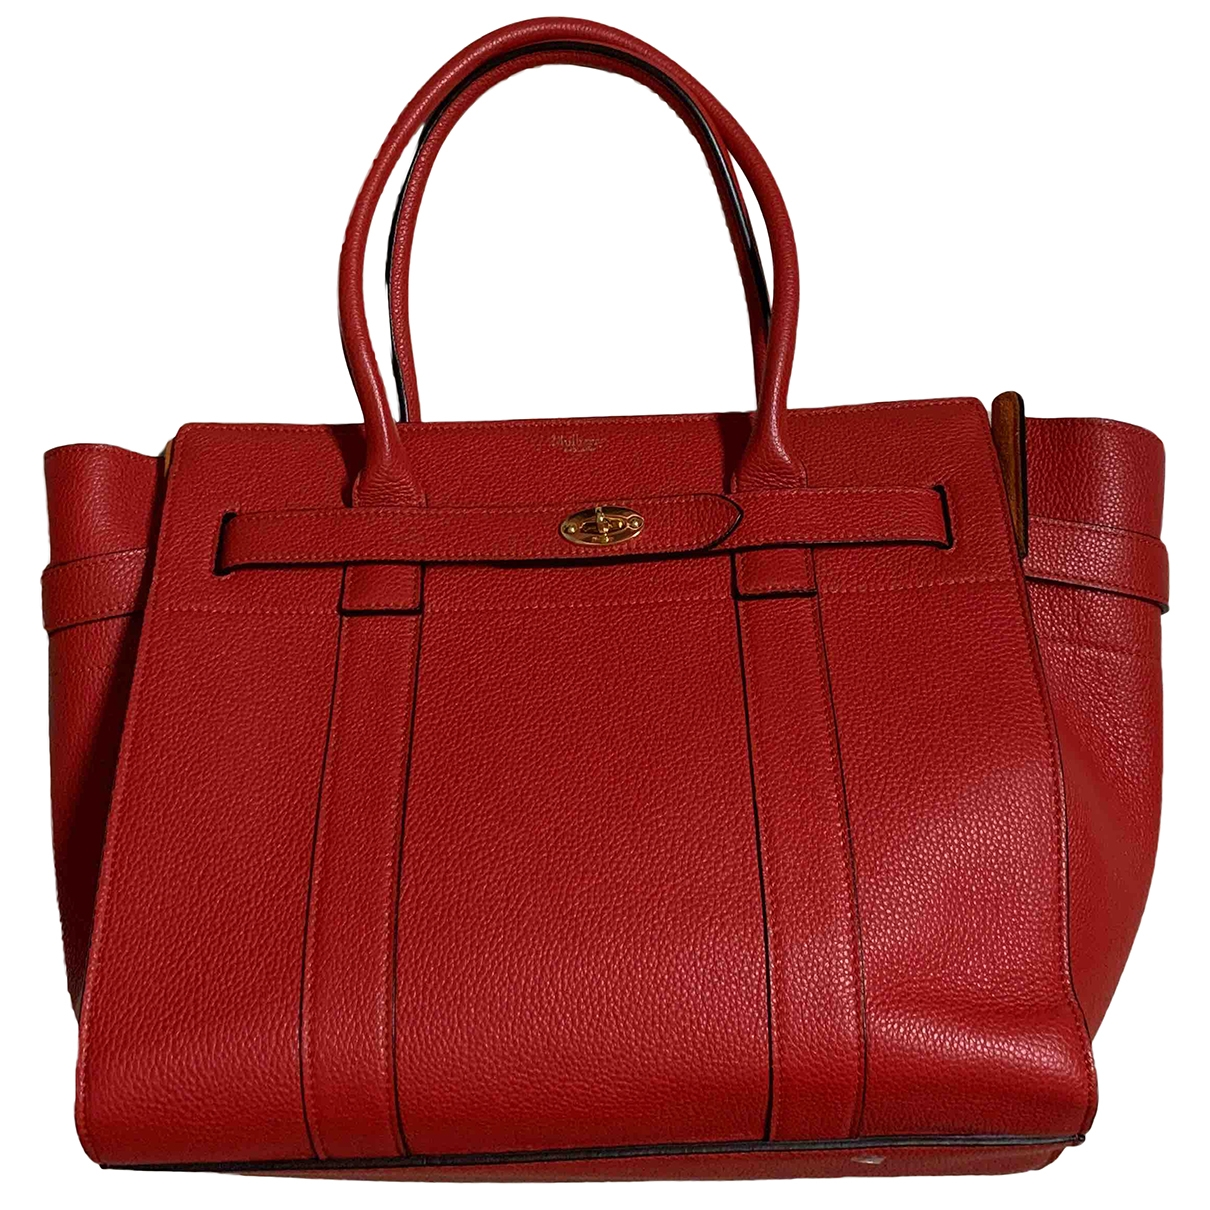 Mulberry Bayswater tote Red Leather handbag for Women \N